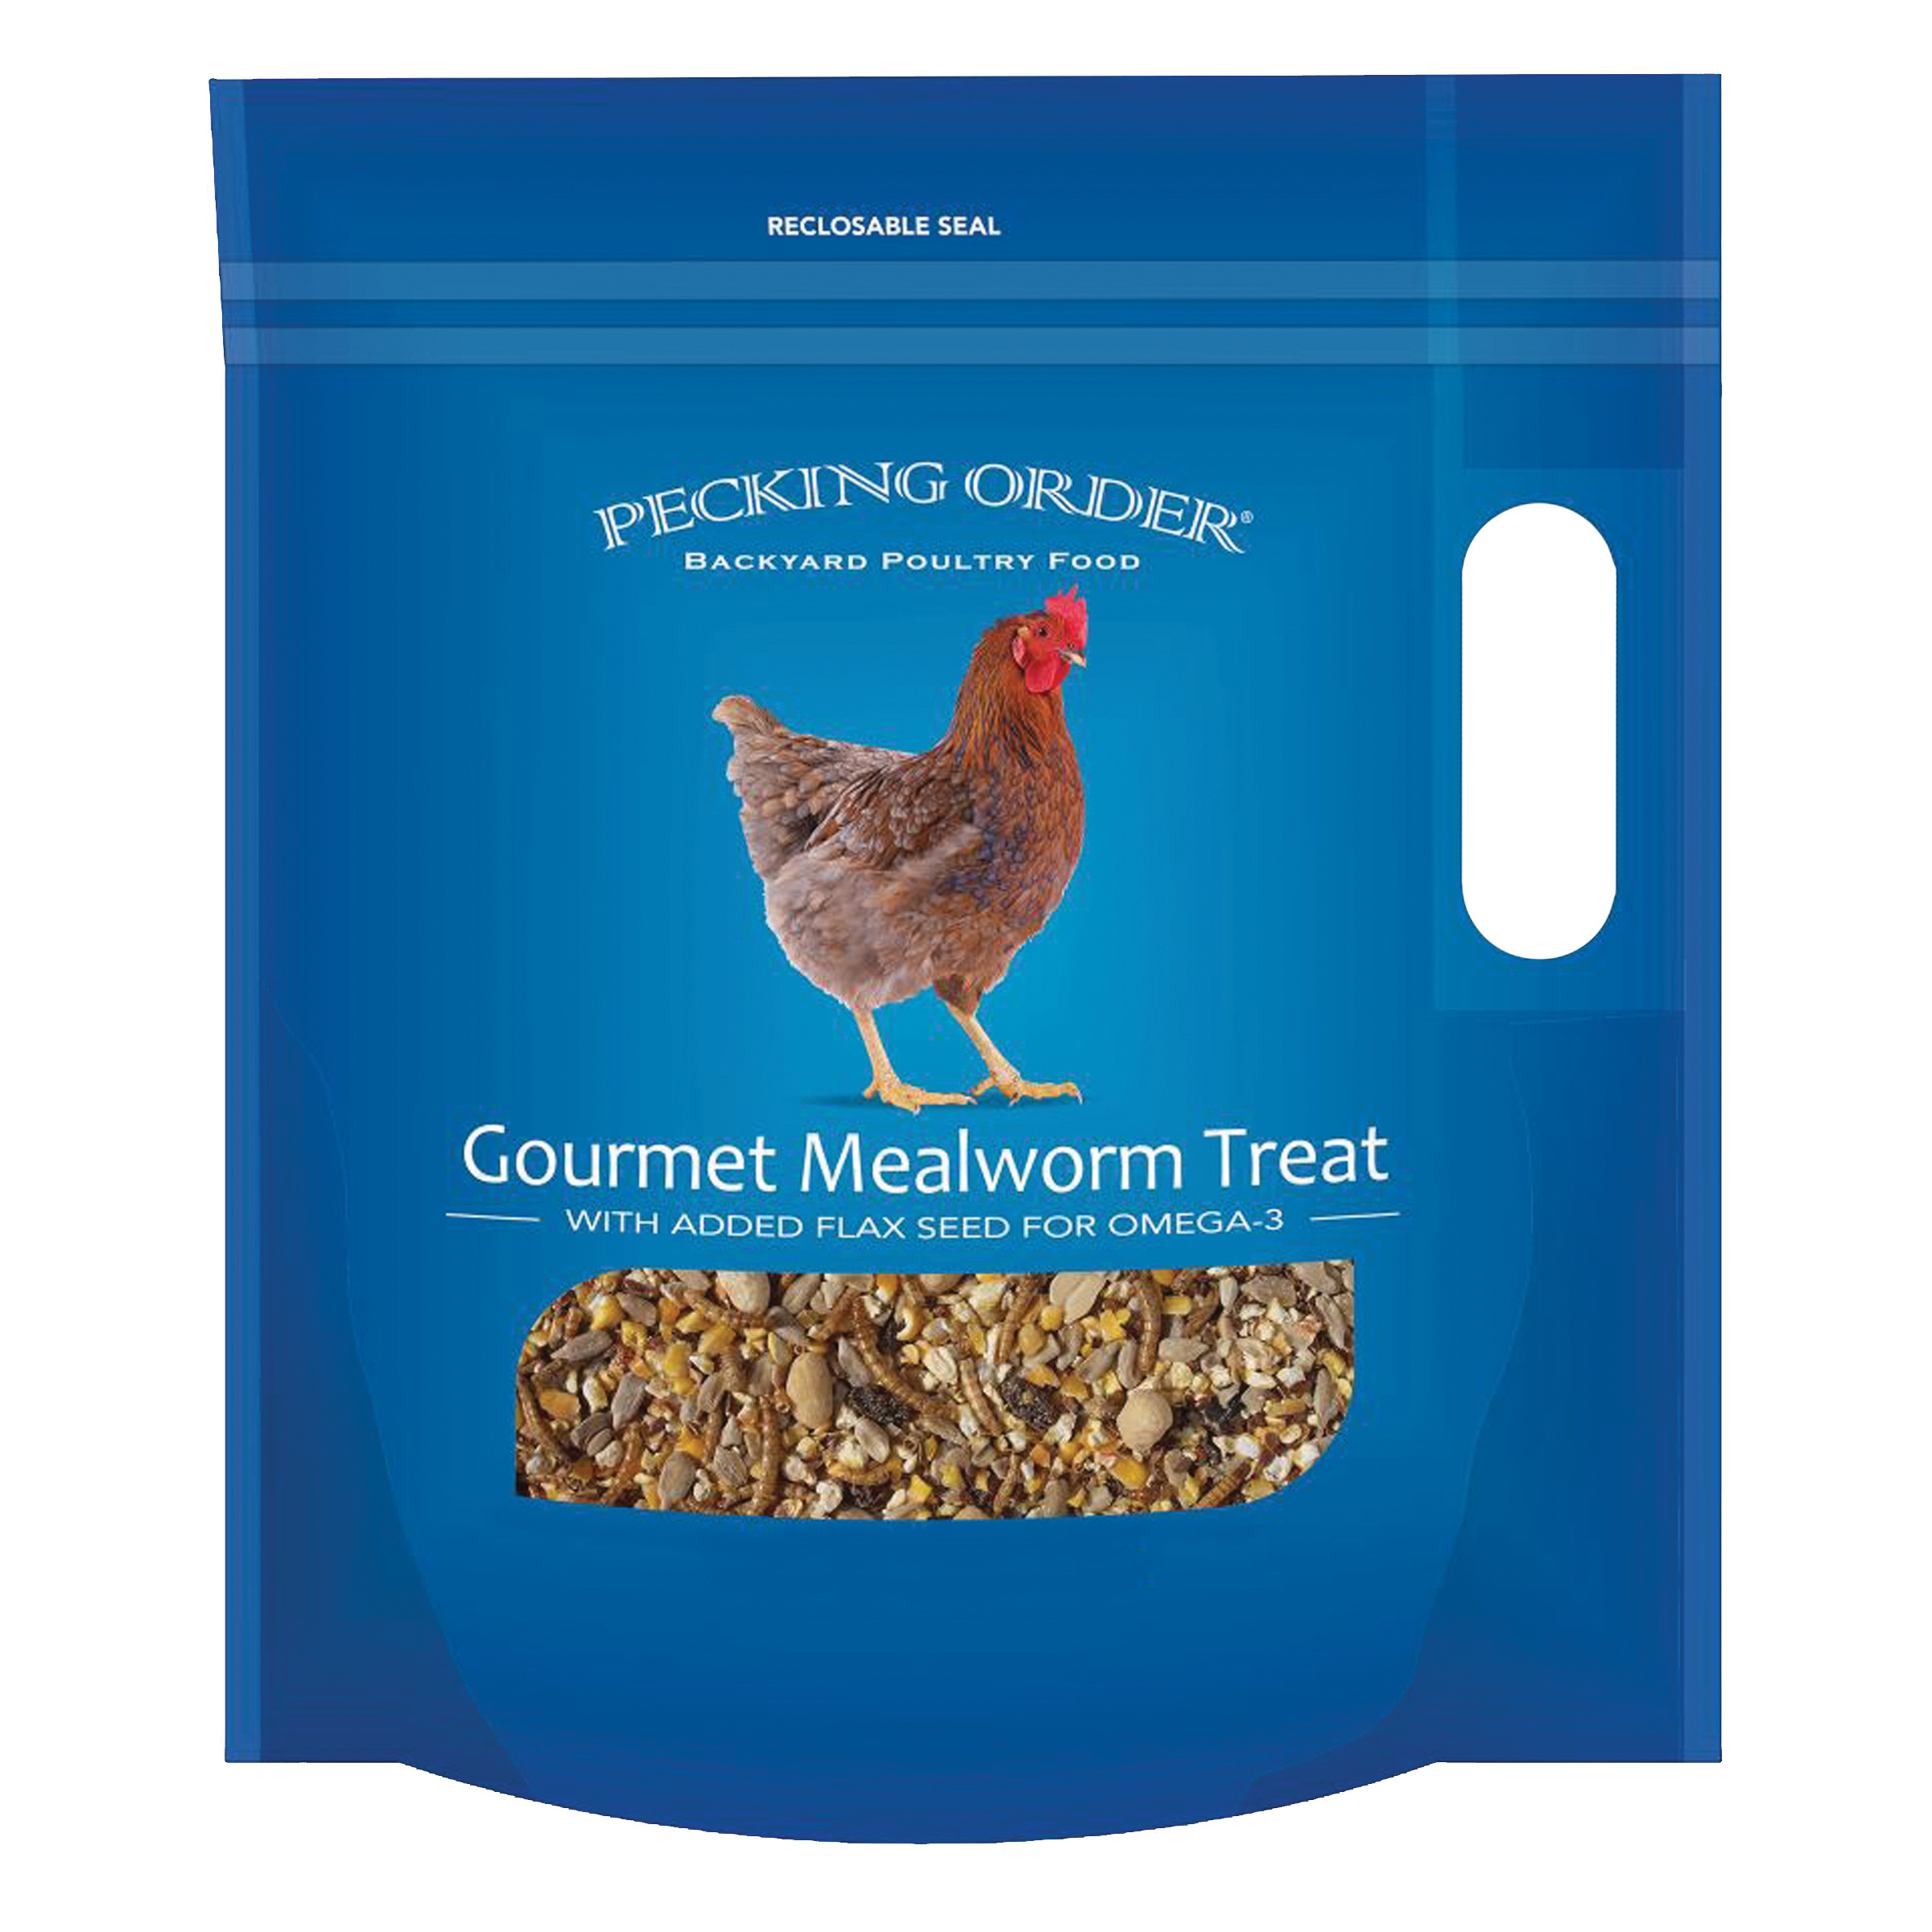 Picture of Pecking Order 009326 Chicken Mealworm Treat, 3 lb Package, Bag